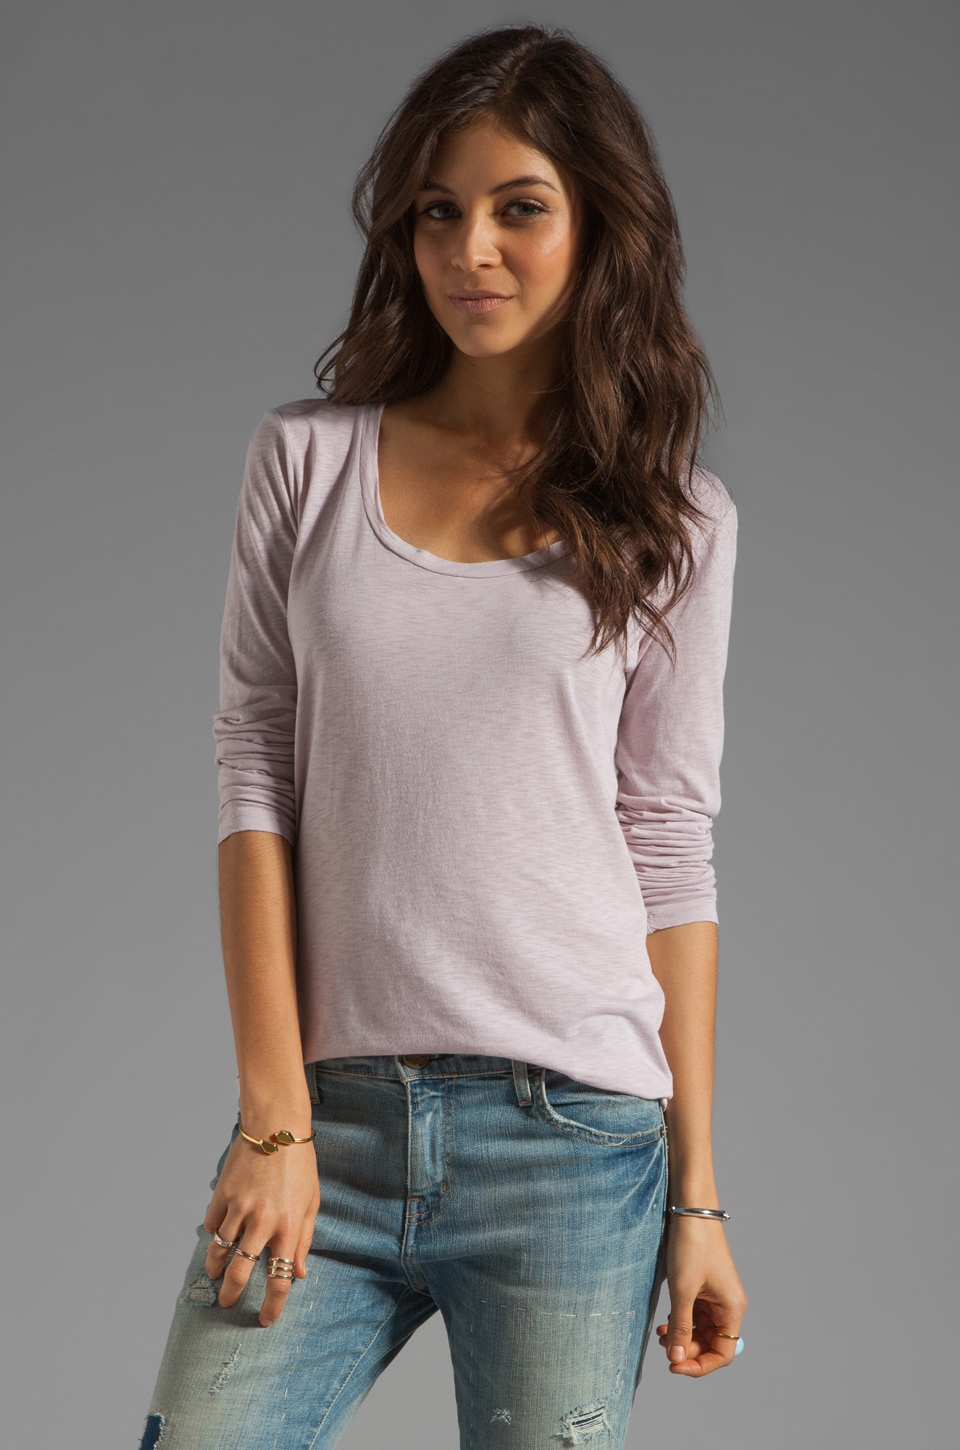 Velvet by Graham & Spencer Penelope Luxe Slub Top in Gravel